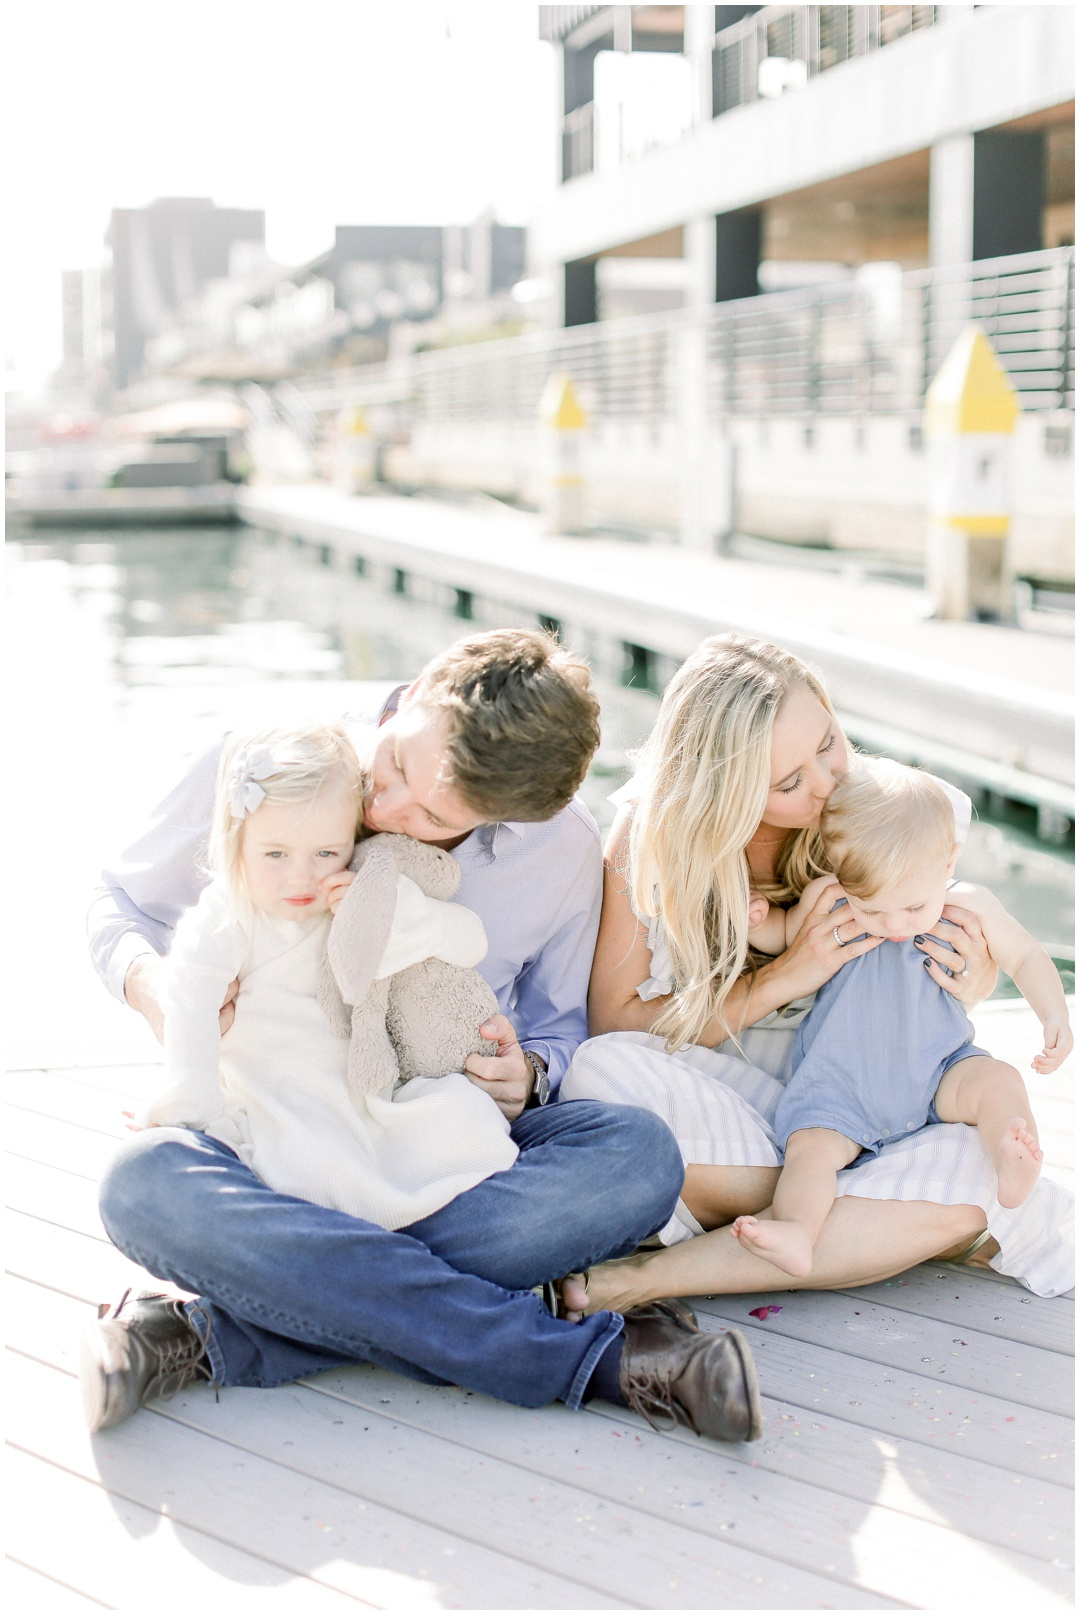 Lido_Marina_Village_Session_Photographer_Newport_Beach_Family_Photographer_Newport_Beach_Newborn_Photographer_Orange_County_Family_Photographer_Cori_Kleckner_Photography_Huntington_Beach_Photographer_Lara_Langford_Family_Session_2665.jpg